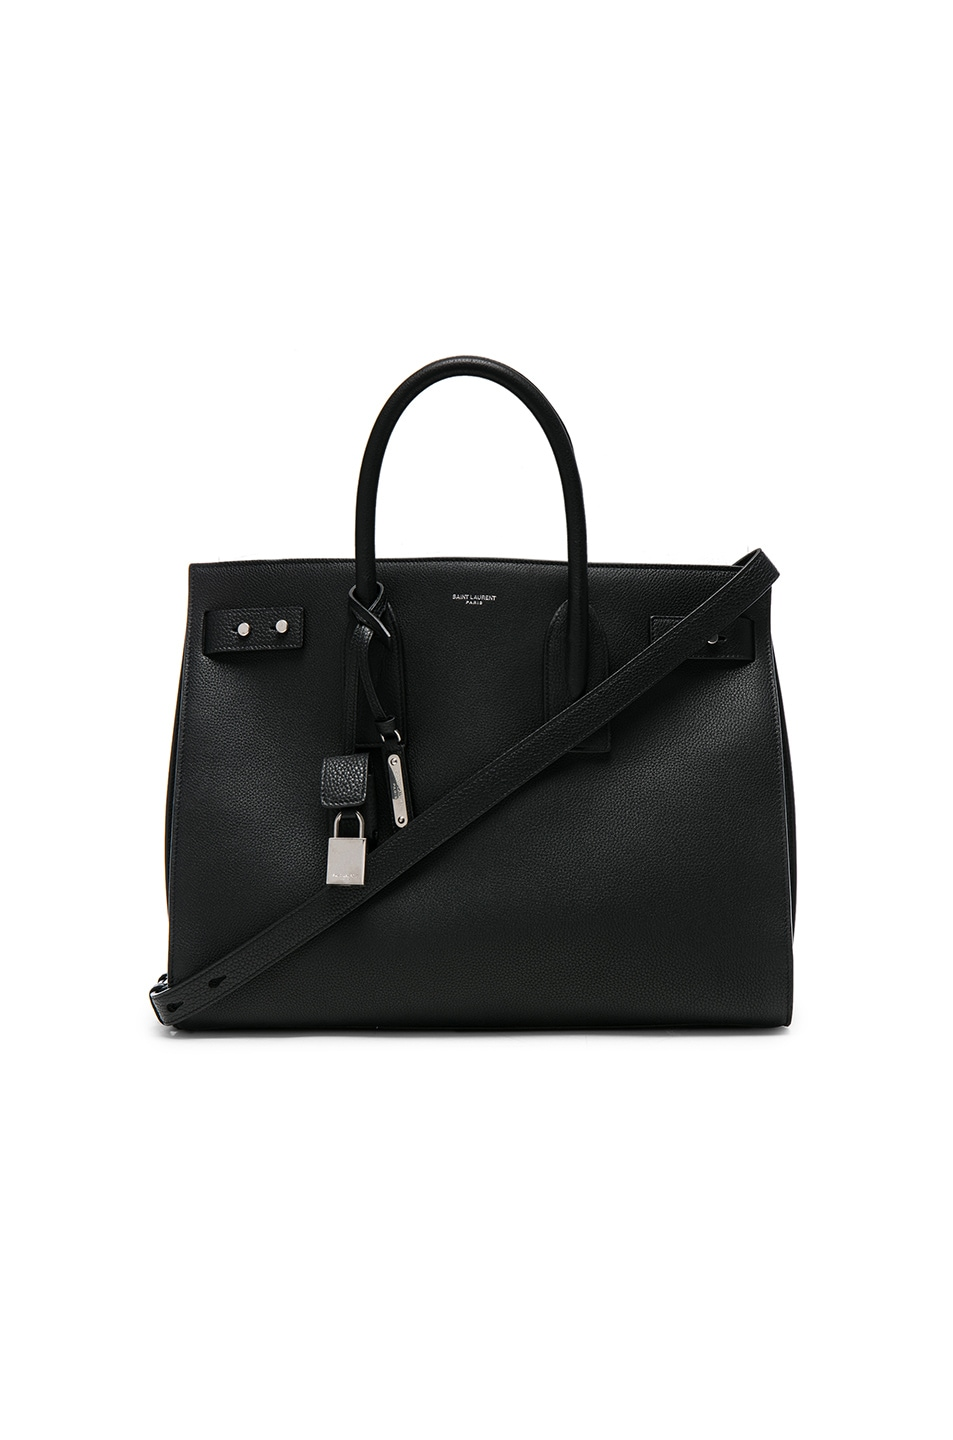 Image 1 of Saint Laurent Medium Supple Sac de Jour in Black